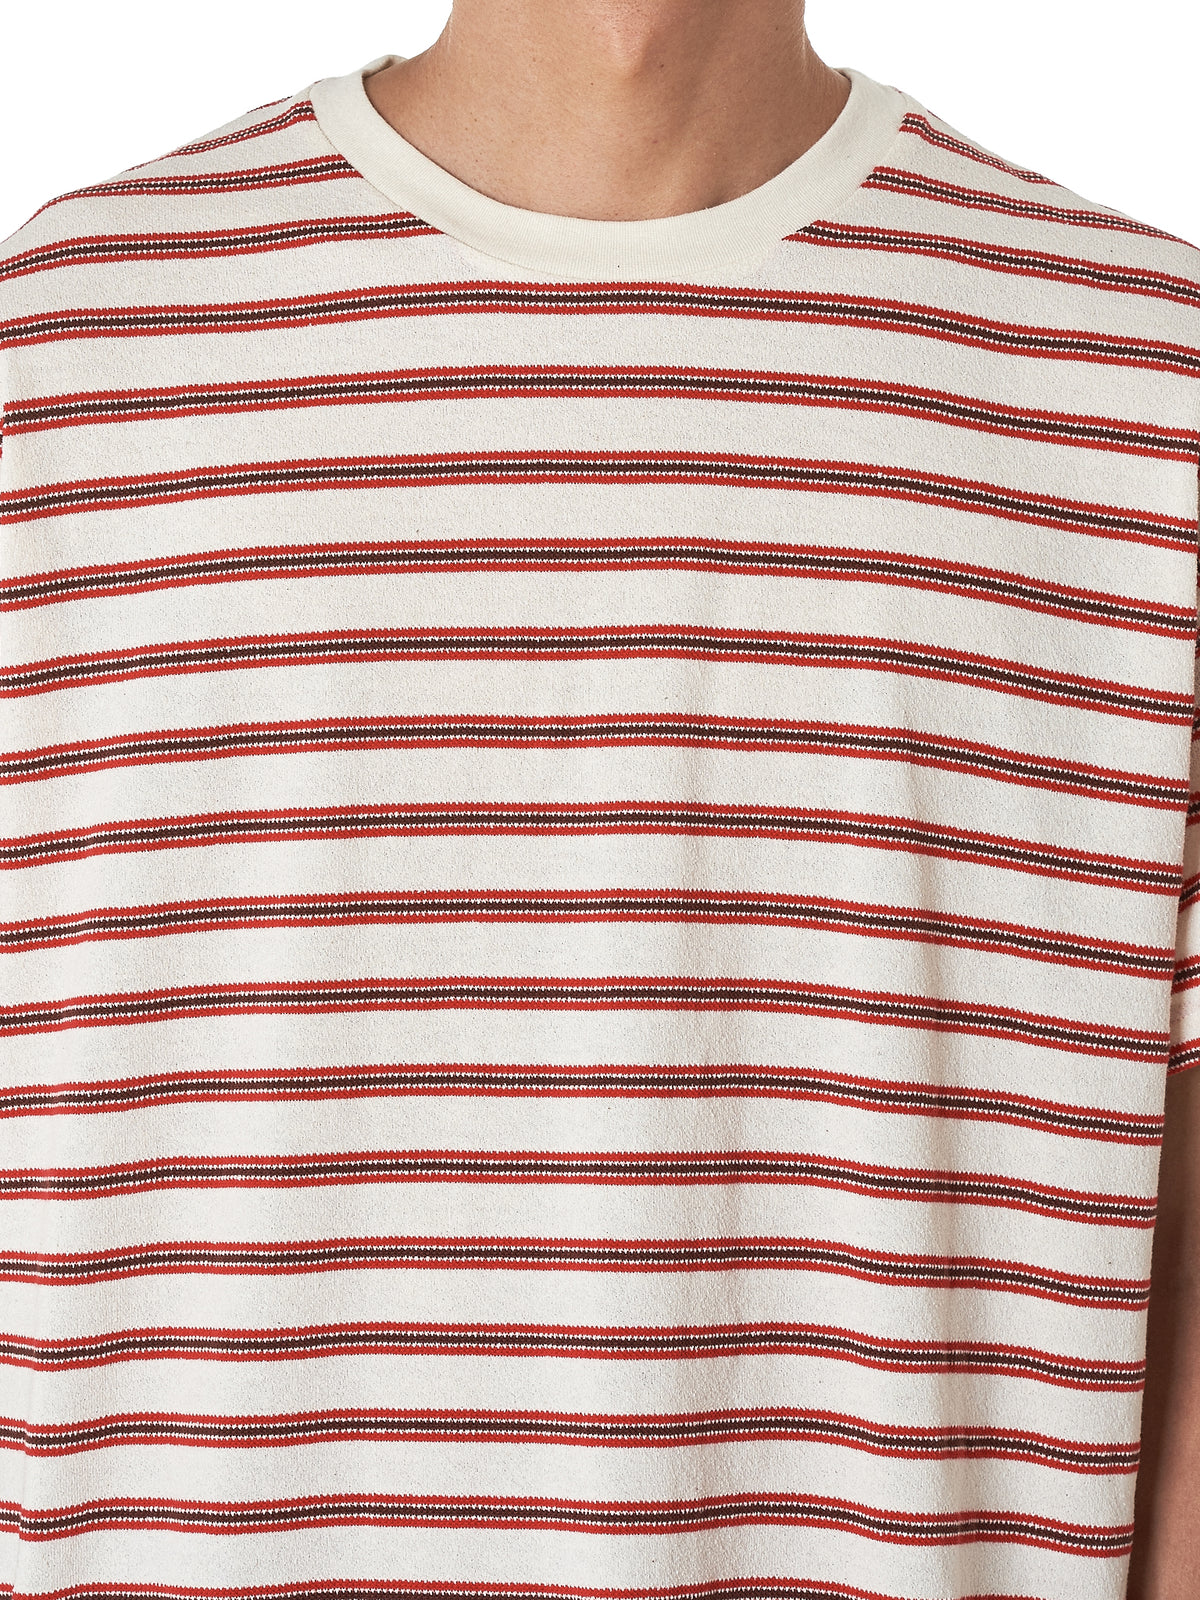 John Elliott Striped Tee Shirt - Hlorenzo Detail 2